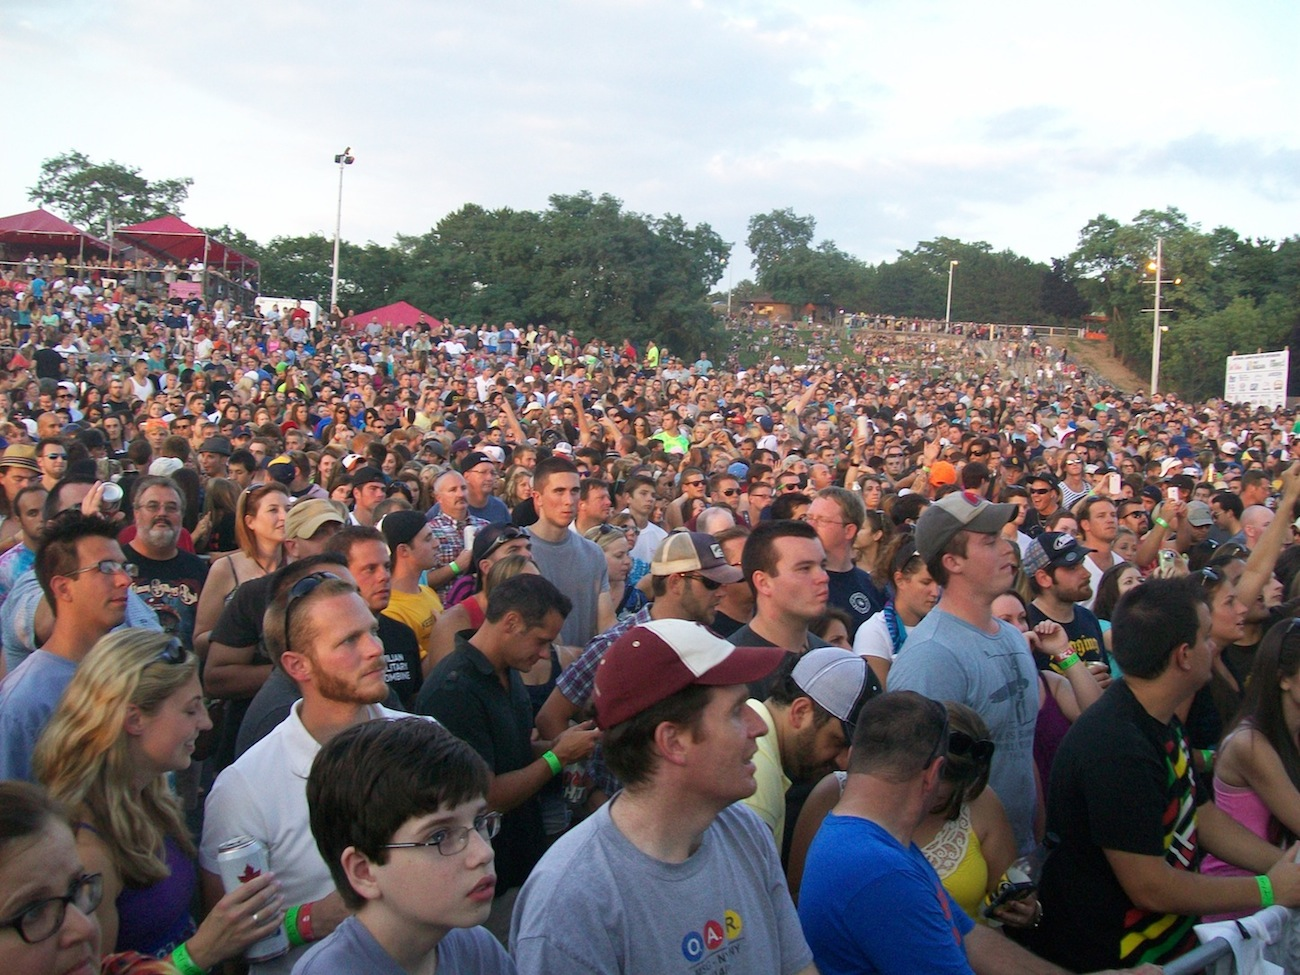 O.A.R. at Artpark